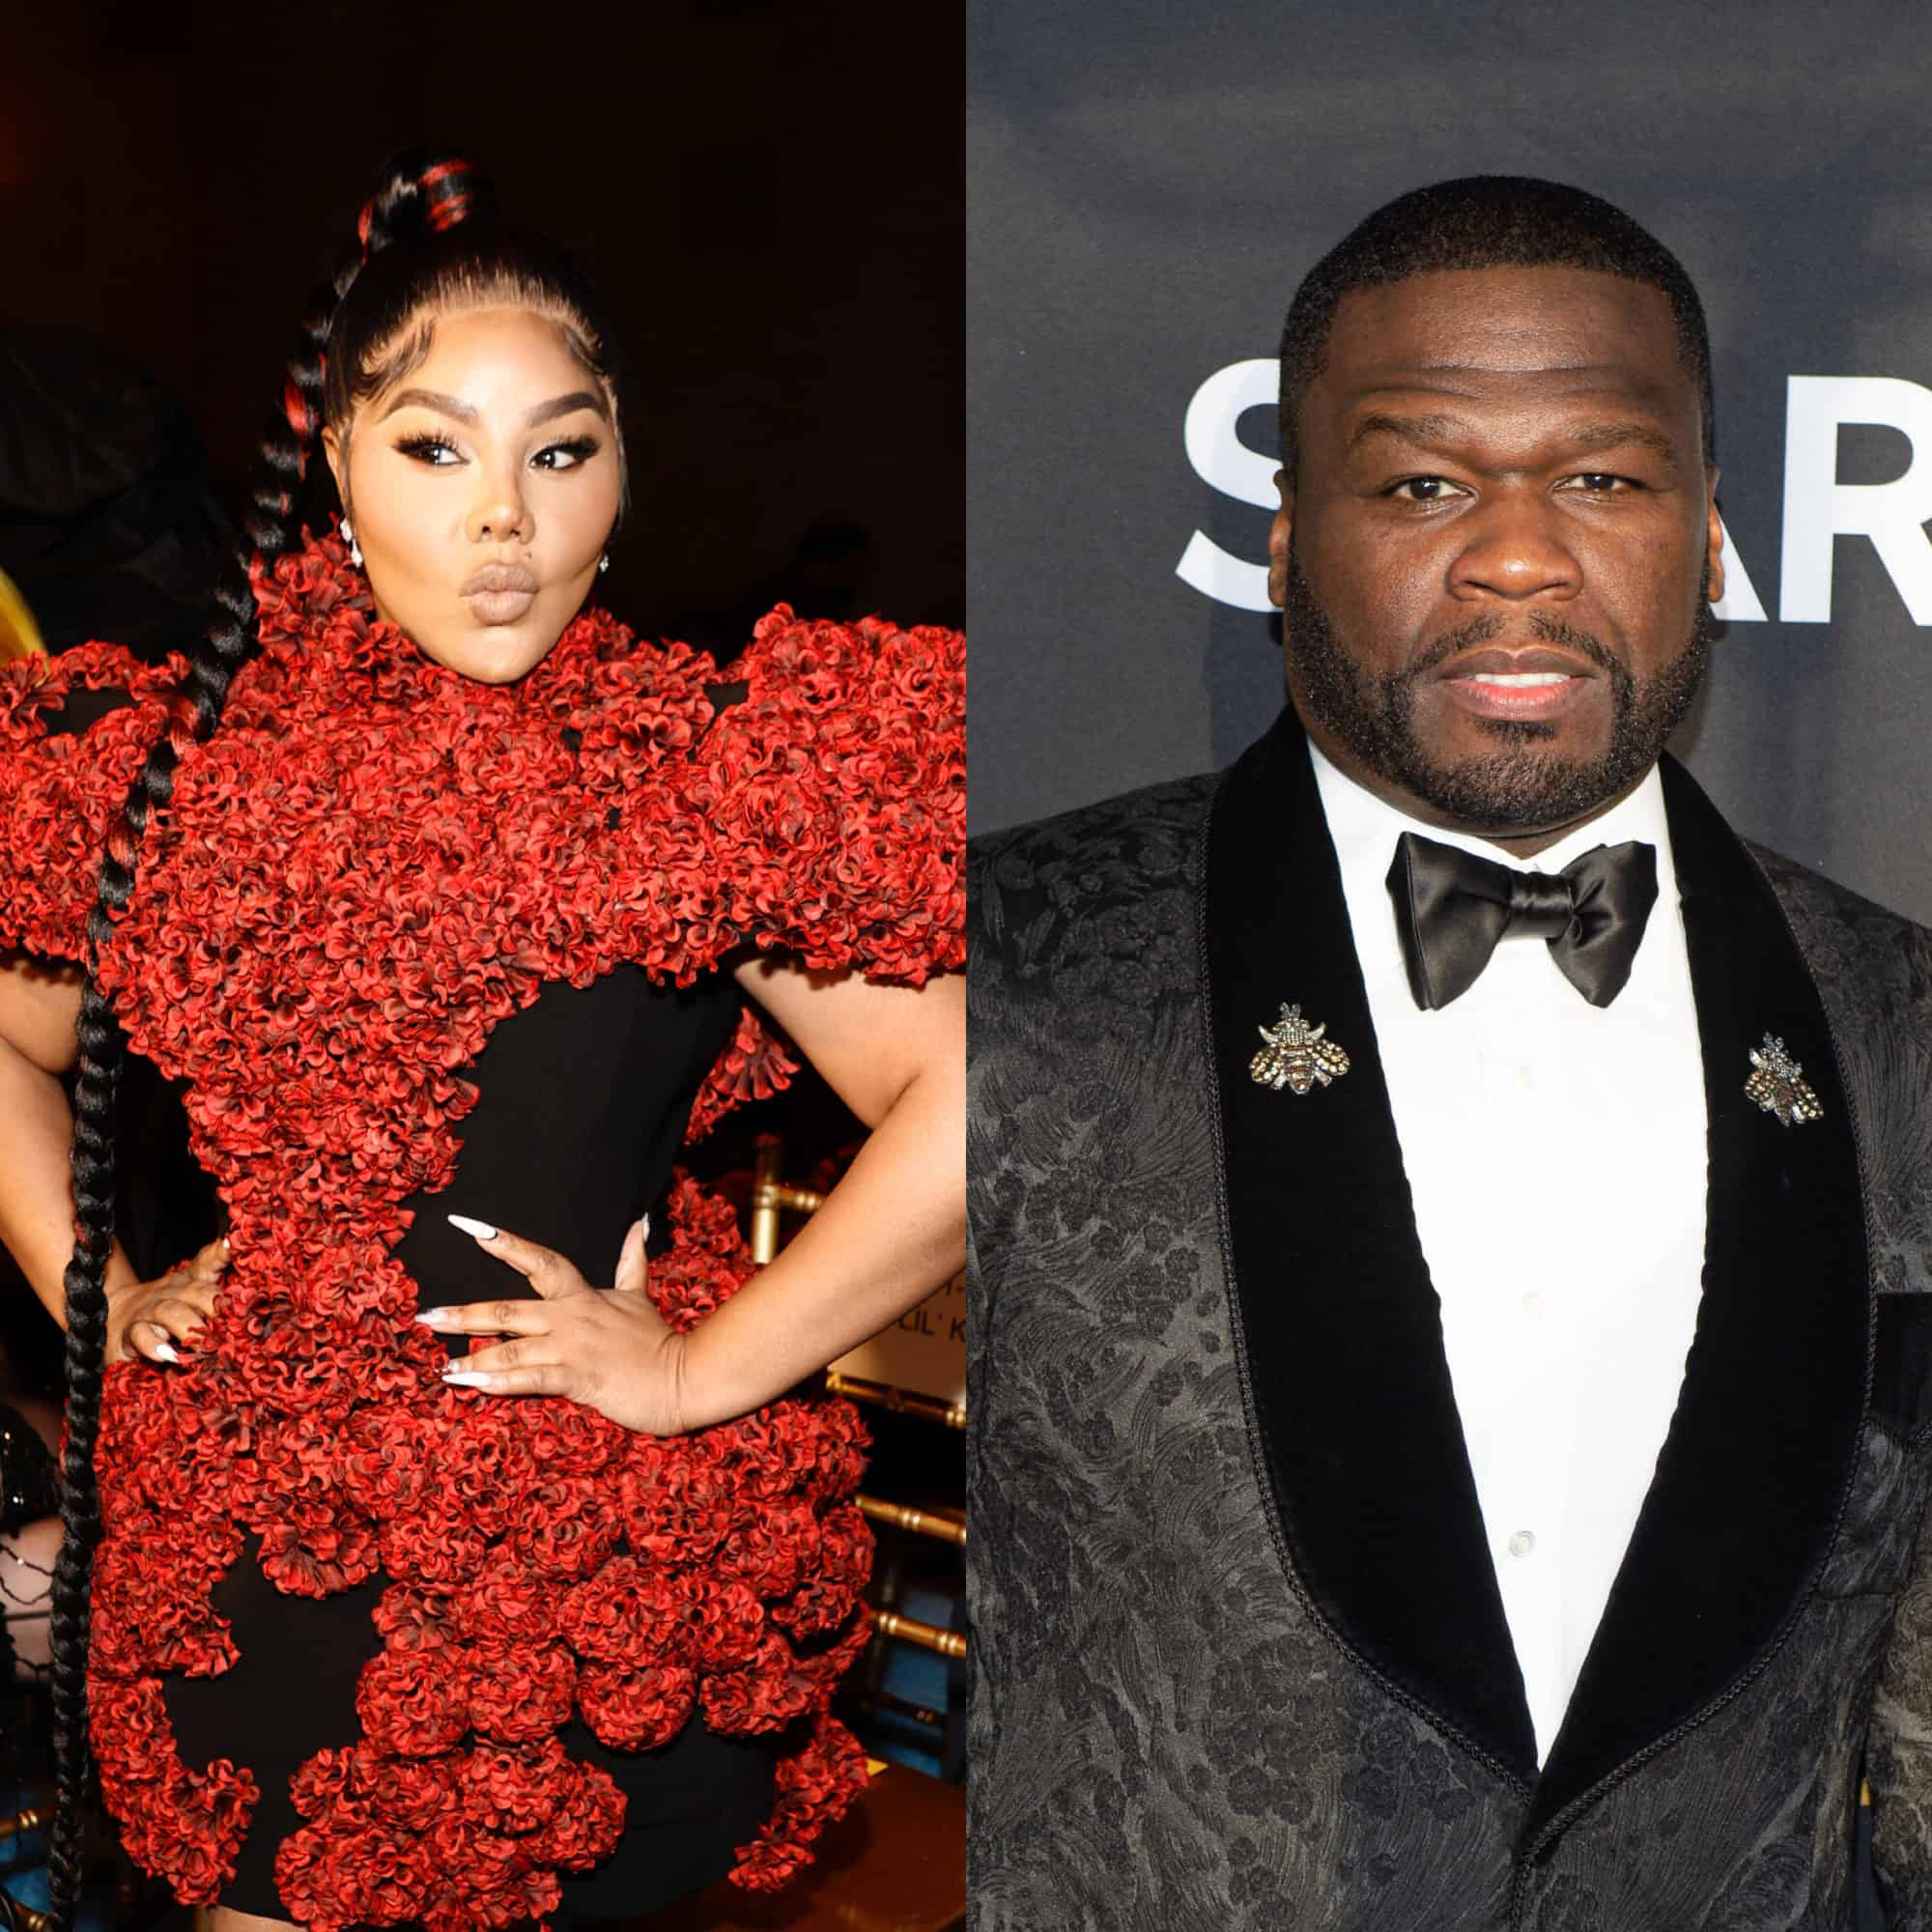 Lil Kim claps back at 50 Cent after he shares a video that compares her to a leprechaun and laughs about it.